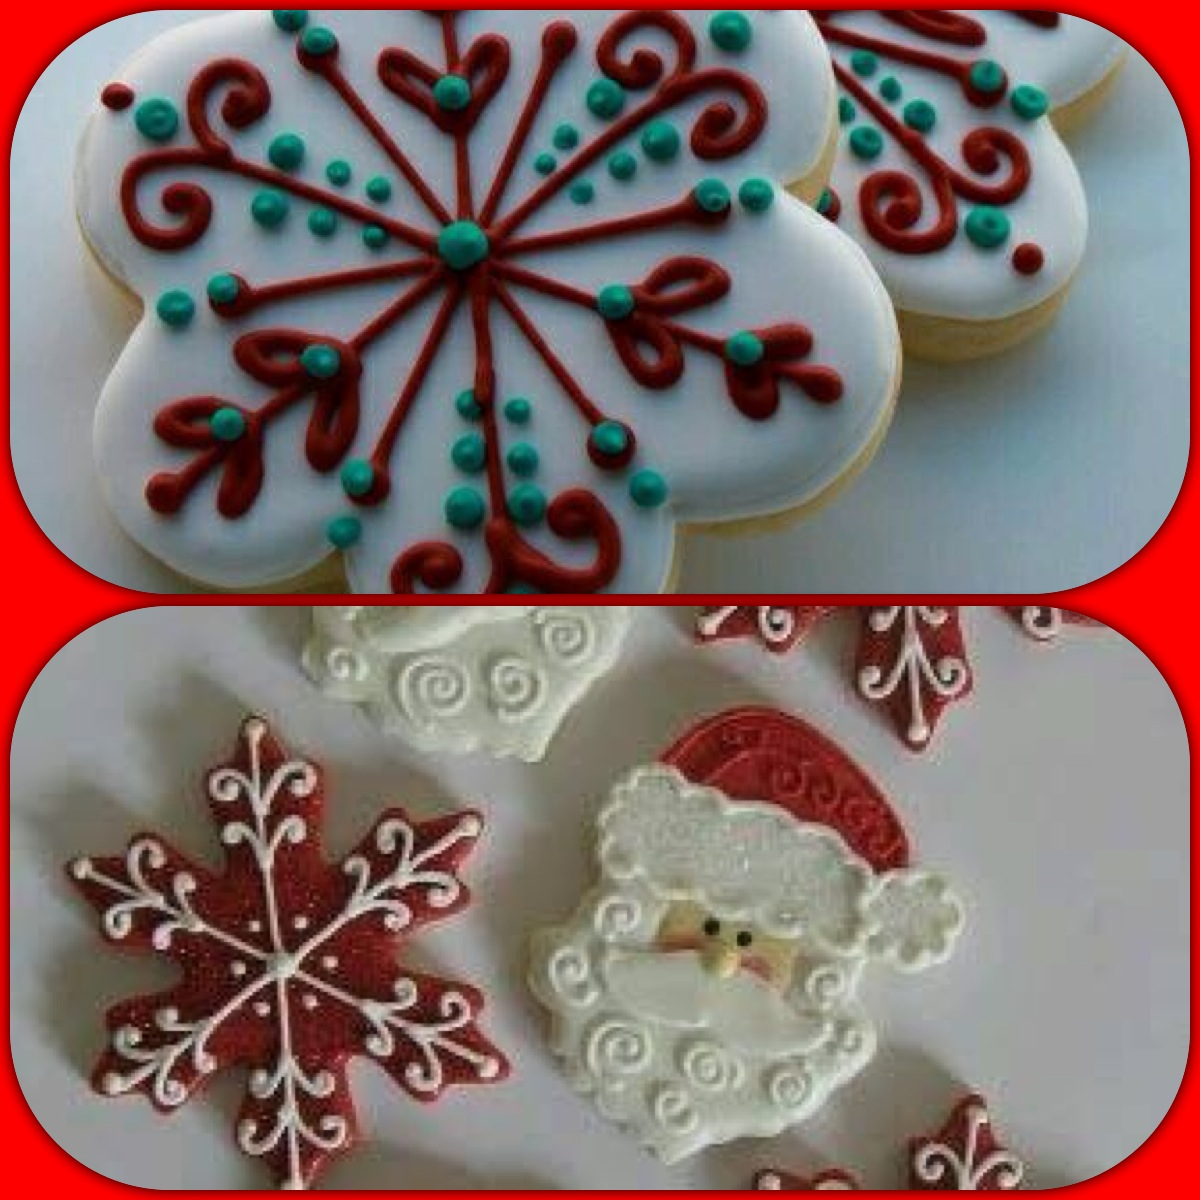 Decorated Christmas Cookies.Christmas Cookie Decorating Adult The Red Wagon